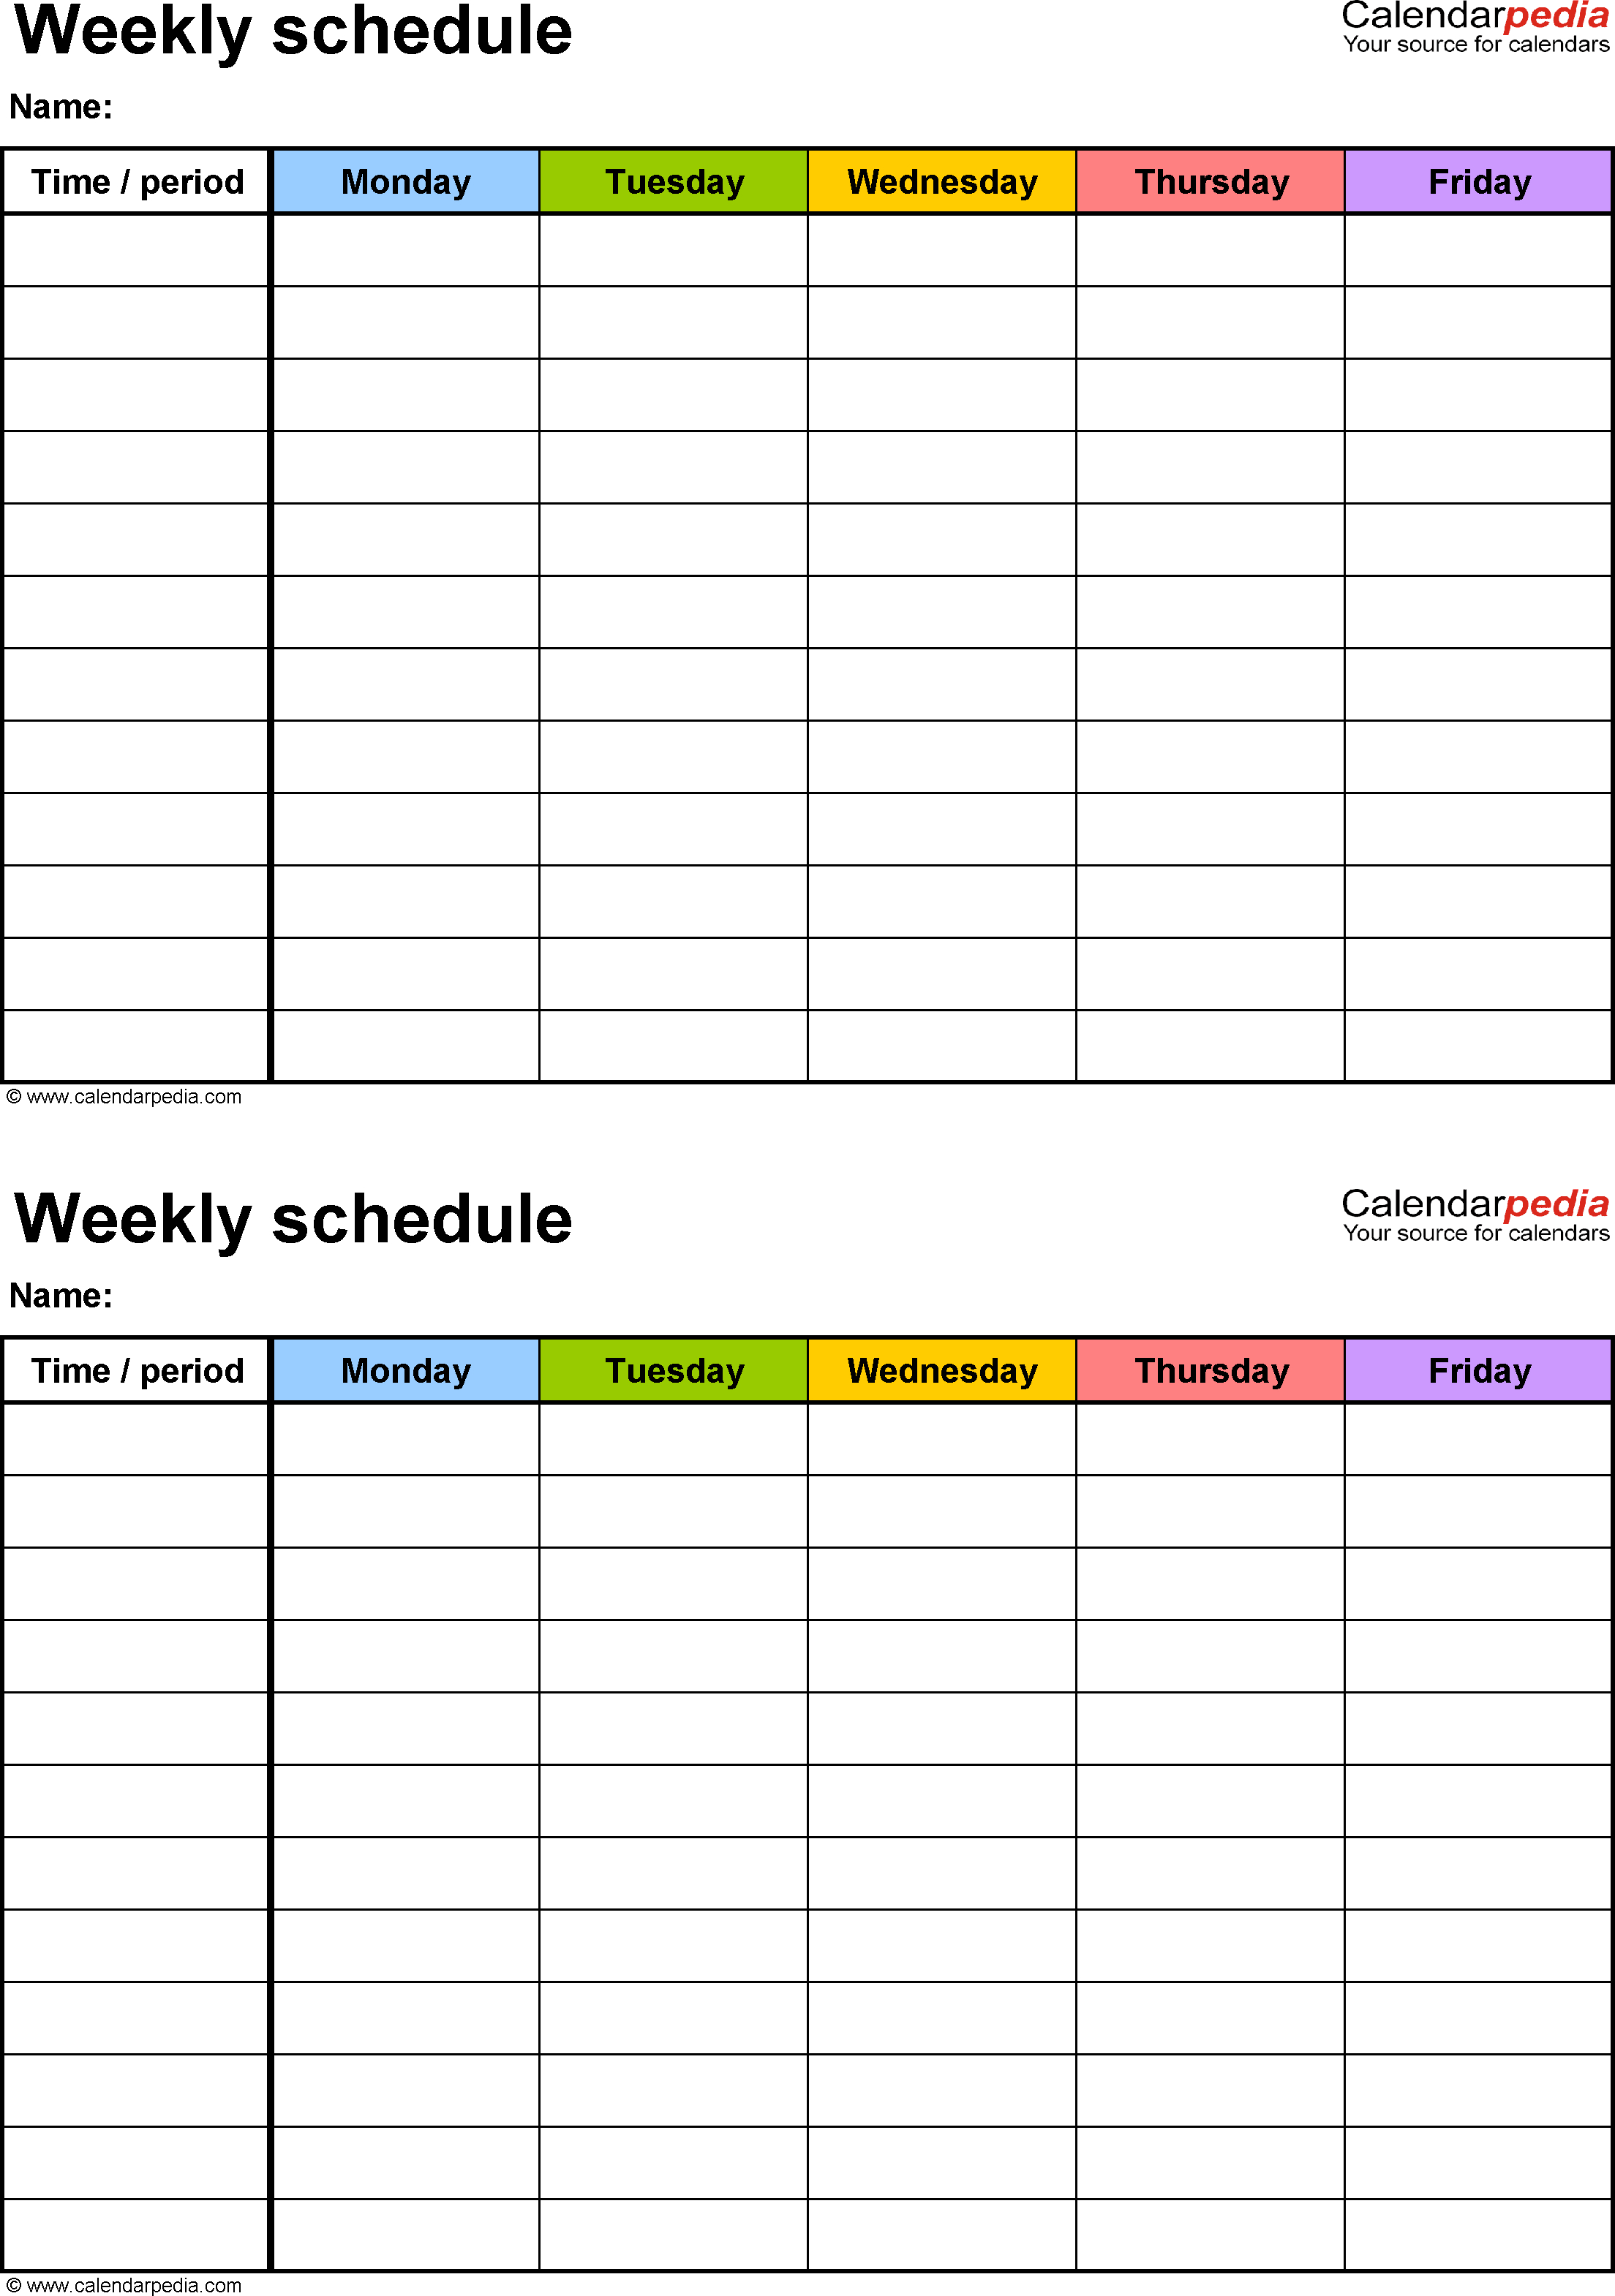 Free Weekly Schedule Templates For Excel - 18 Templates in Calendar Printable Monthly Planner Templates